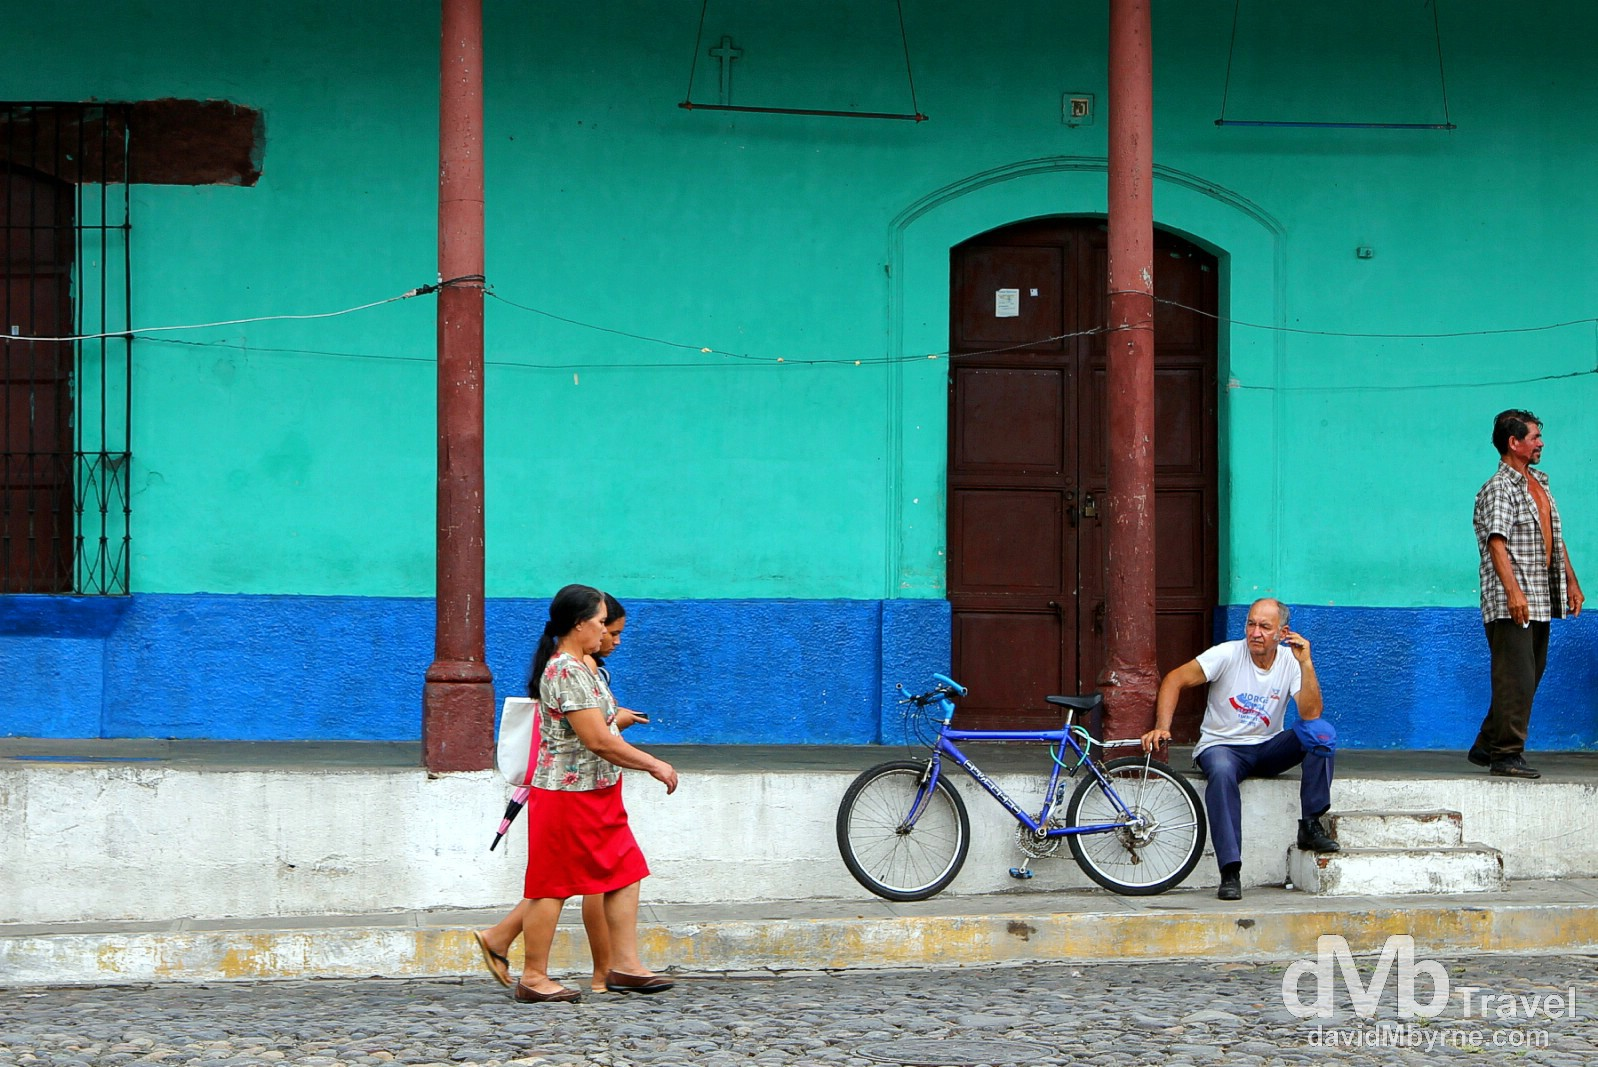 It has all of the Central American reliables - cobblestone streets lined by pastel coloured walls & the central plaza with the whitewashed church. It's just does it all a little bit better (& prettier) than most. Suchitoto, El Salvador. June 4th 2013.